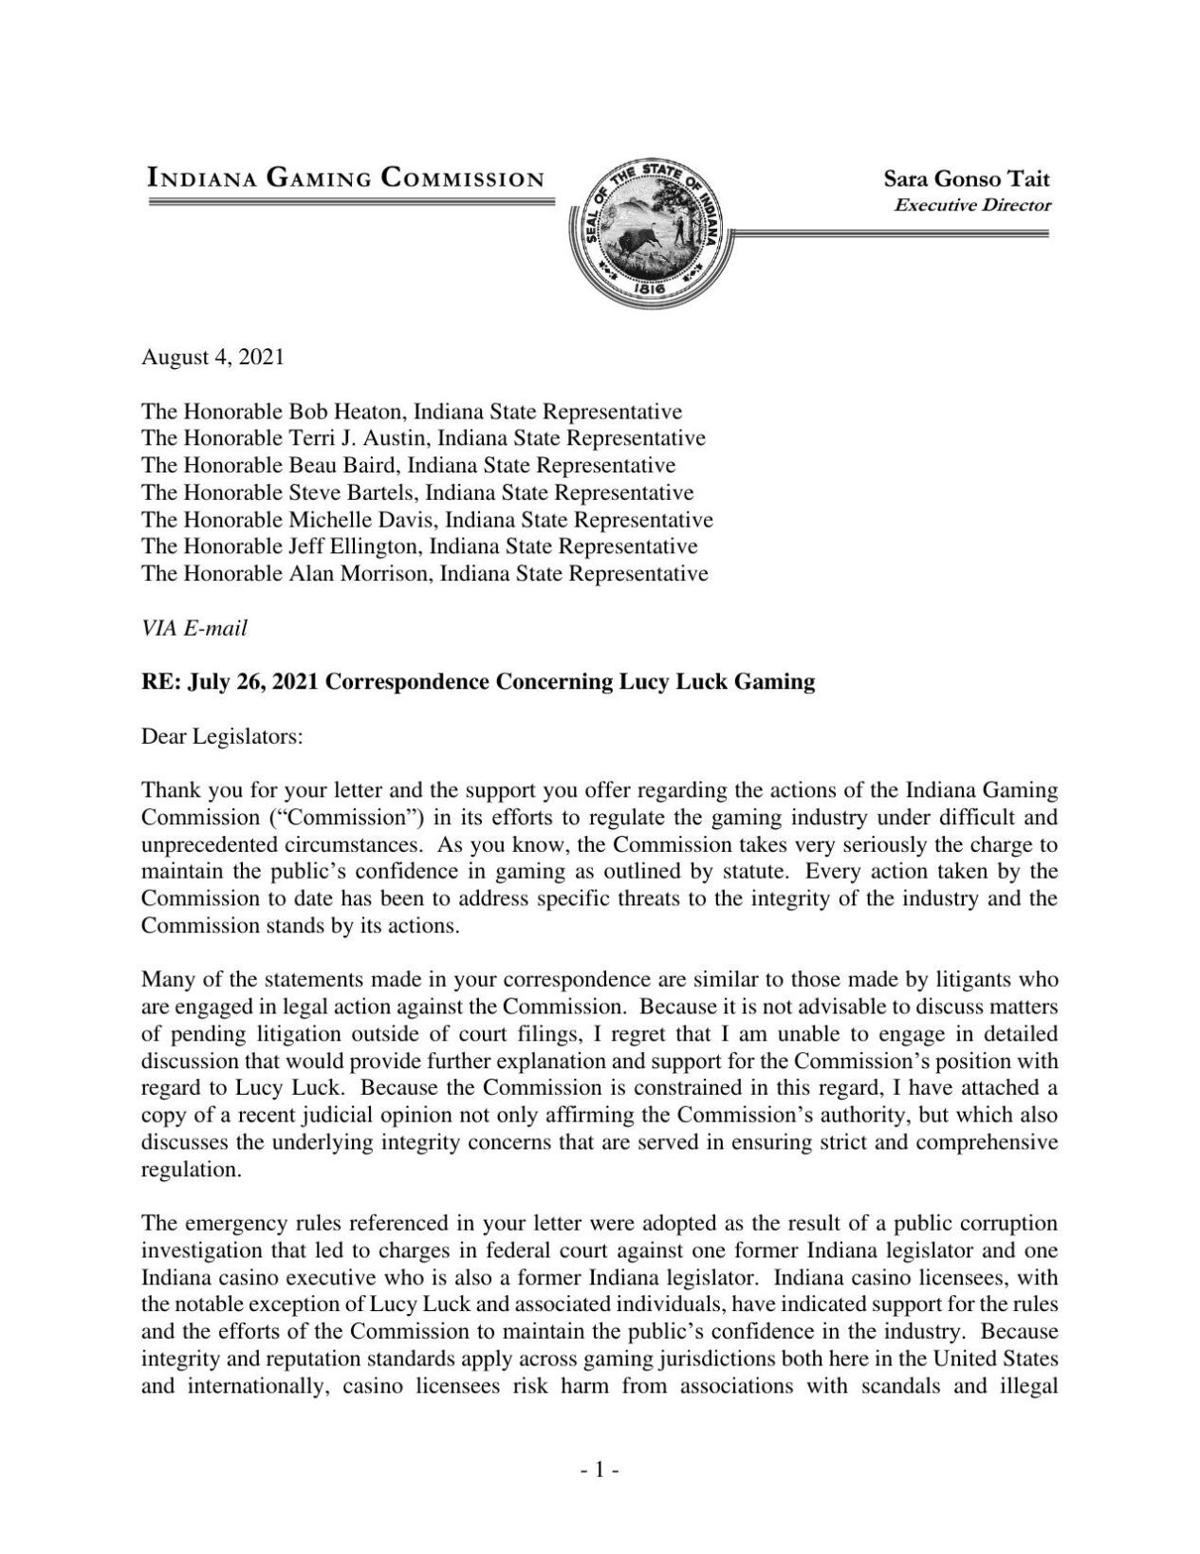 Indiana Gaming Commission response to lawmakers' letter